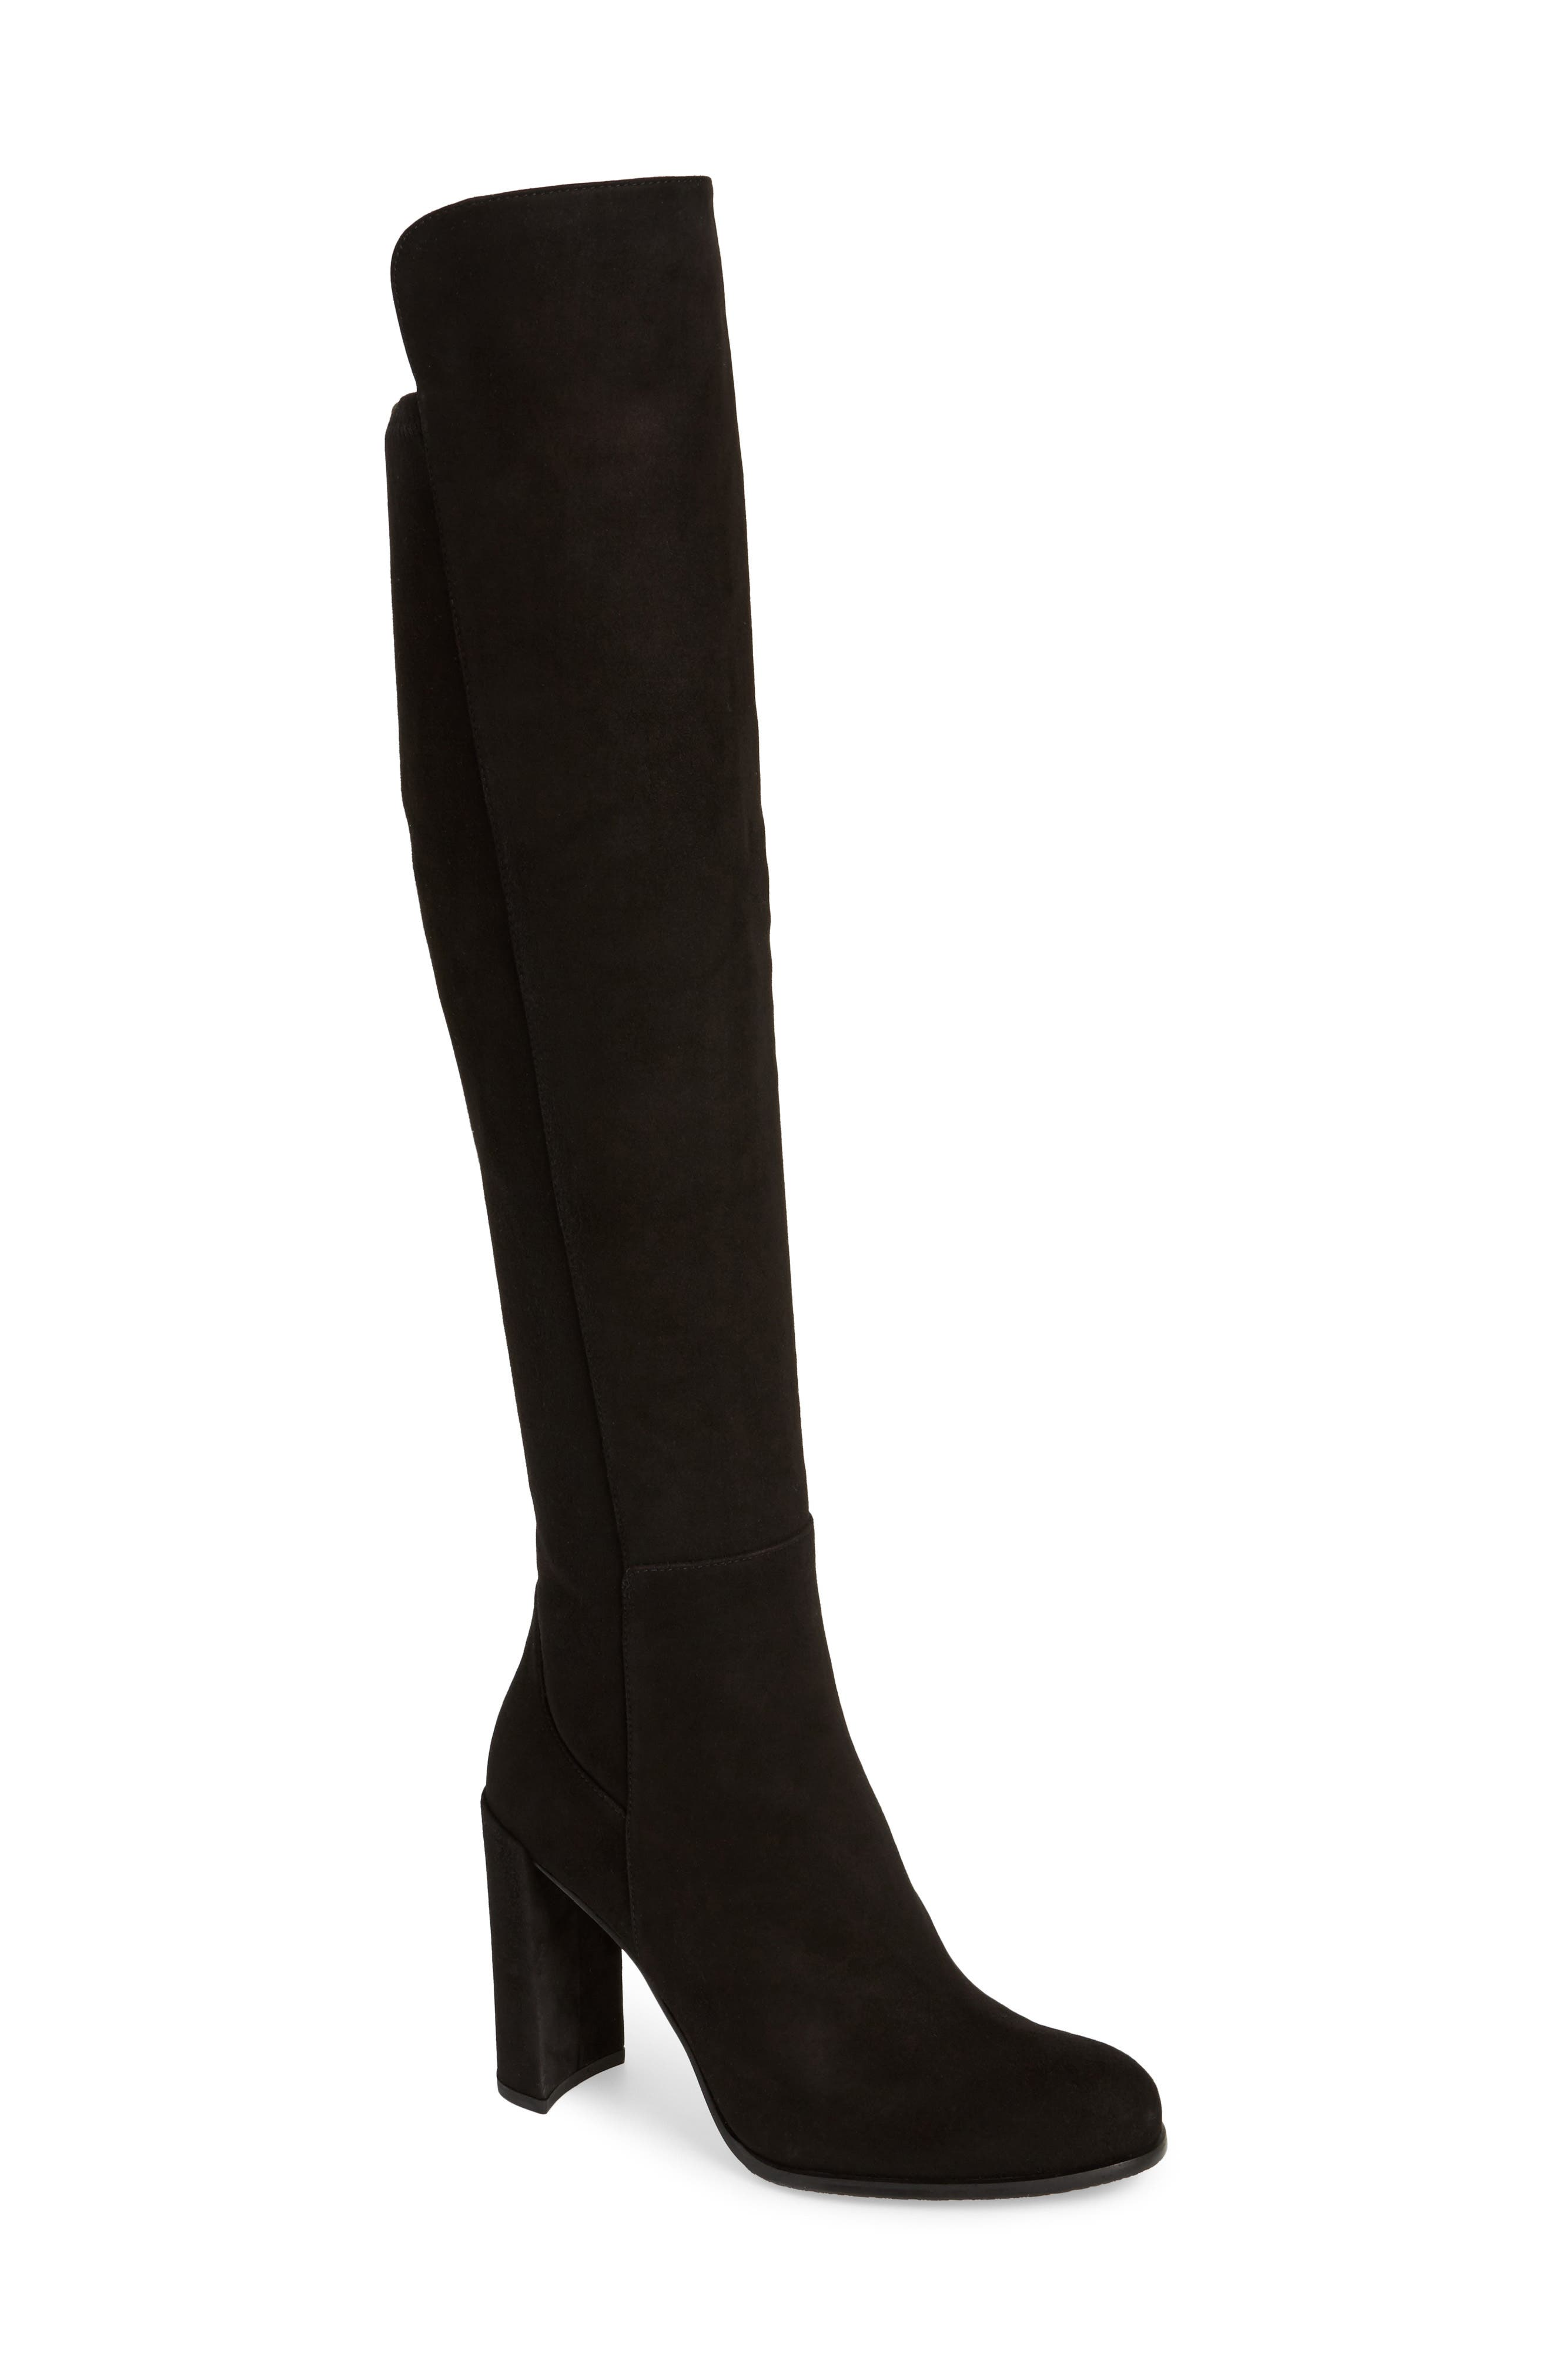 Alljill Over the Knee Boot,                         Main,                         color, 001